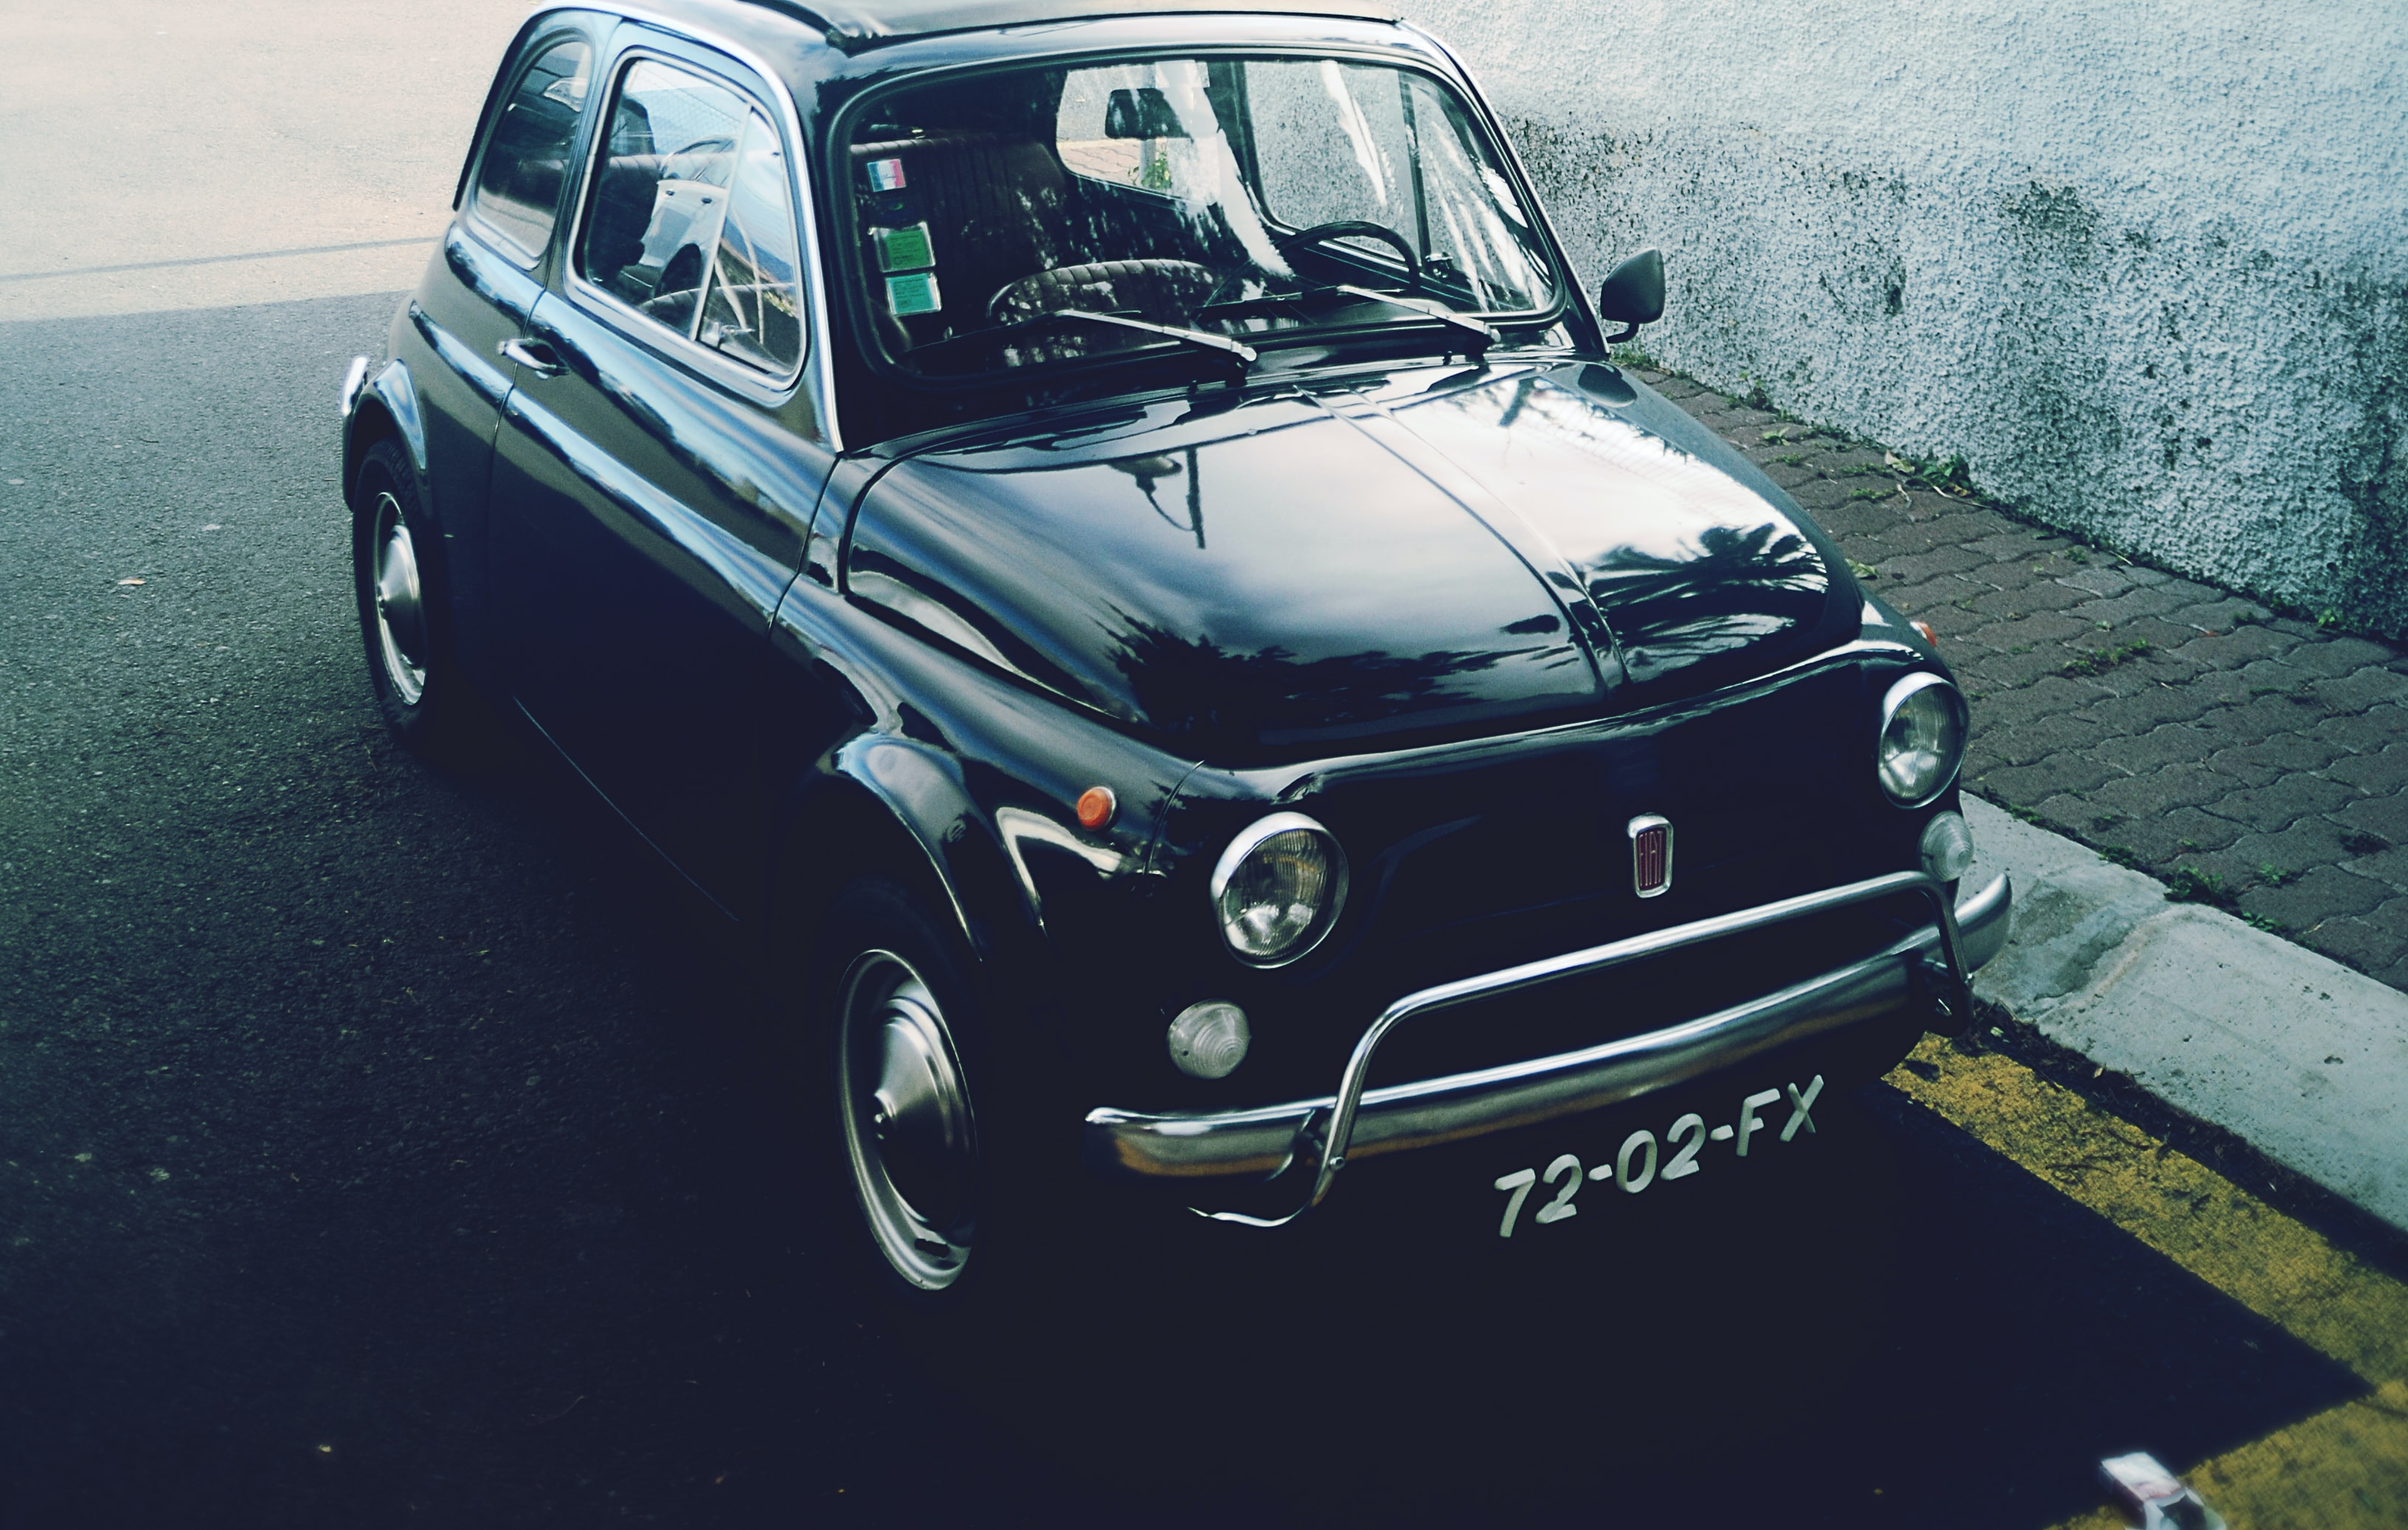 Small vintage Fiat parked on street.